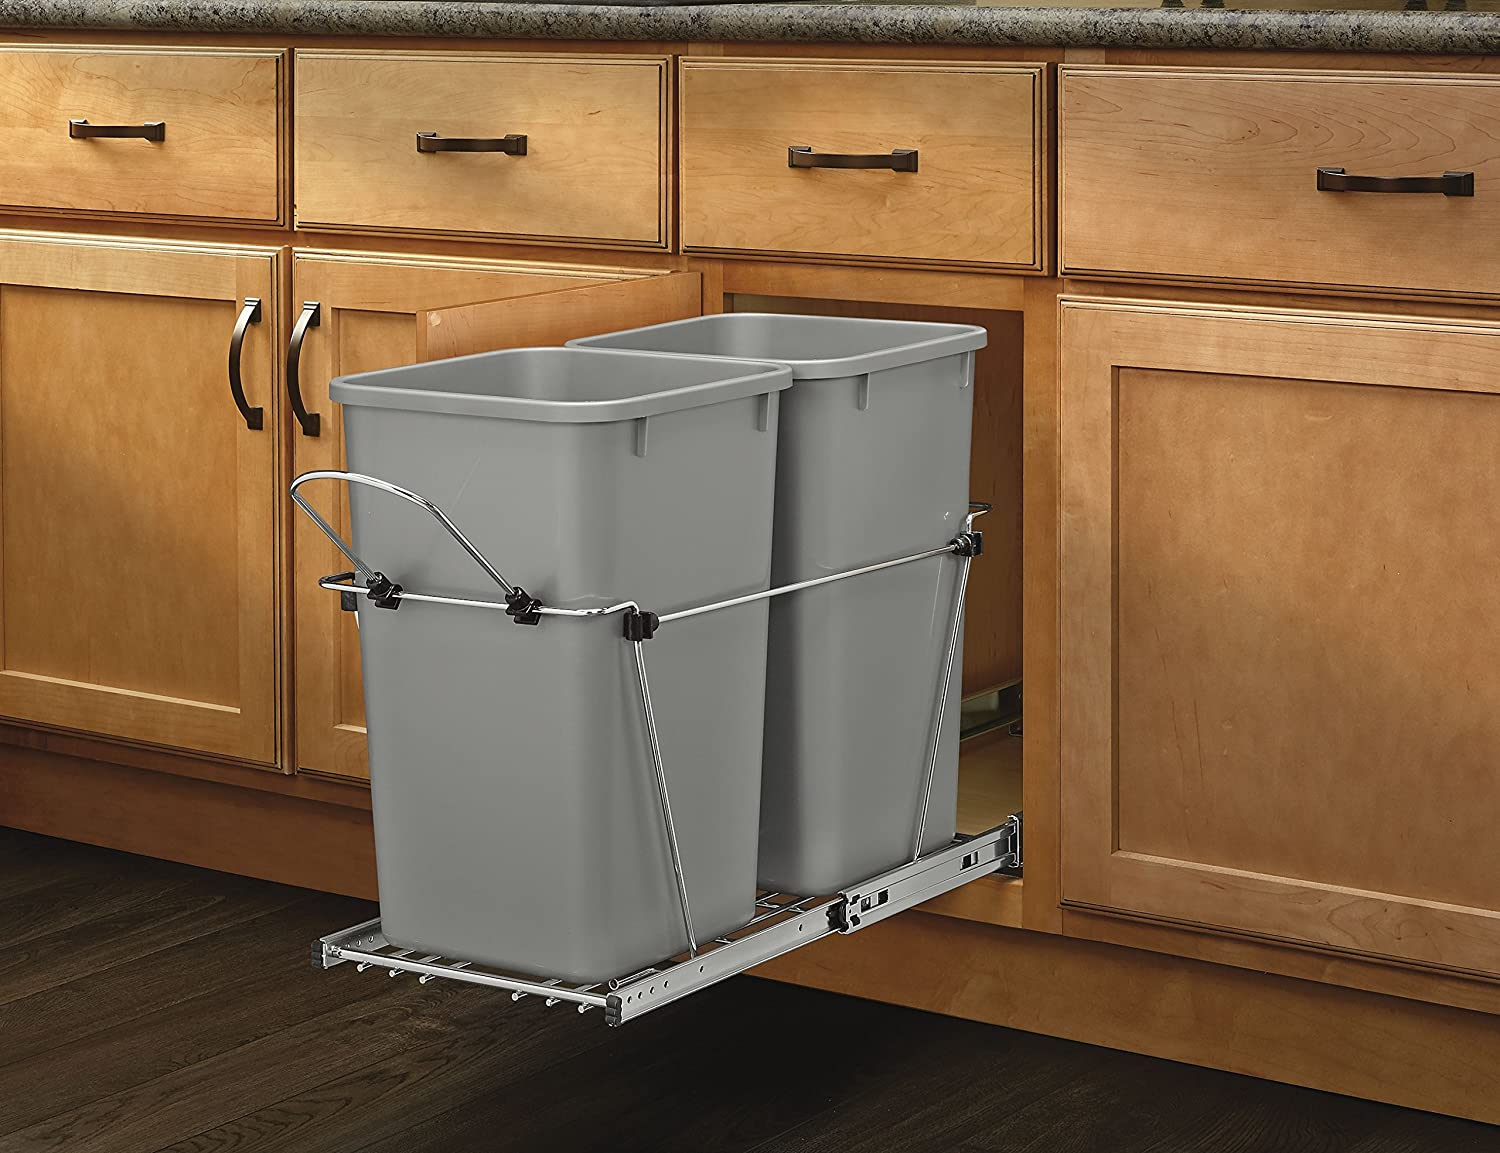 amazoncom revashelf rv15kd17c s double 27 qt pullout silver and chrome waste container home u0026 kitchen